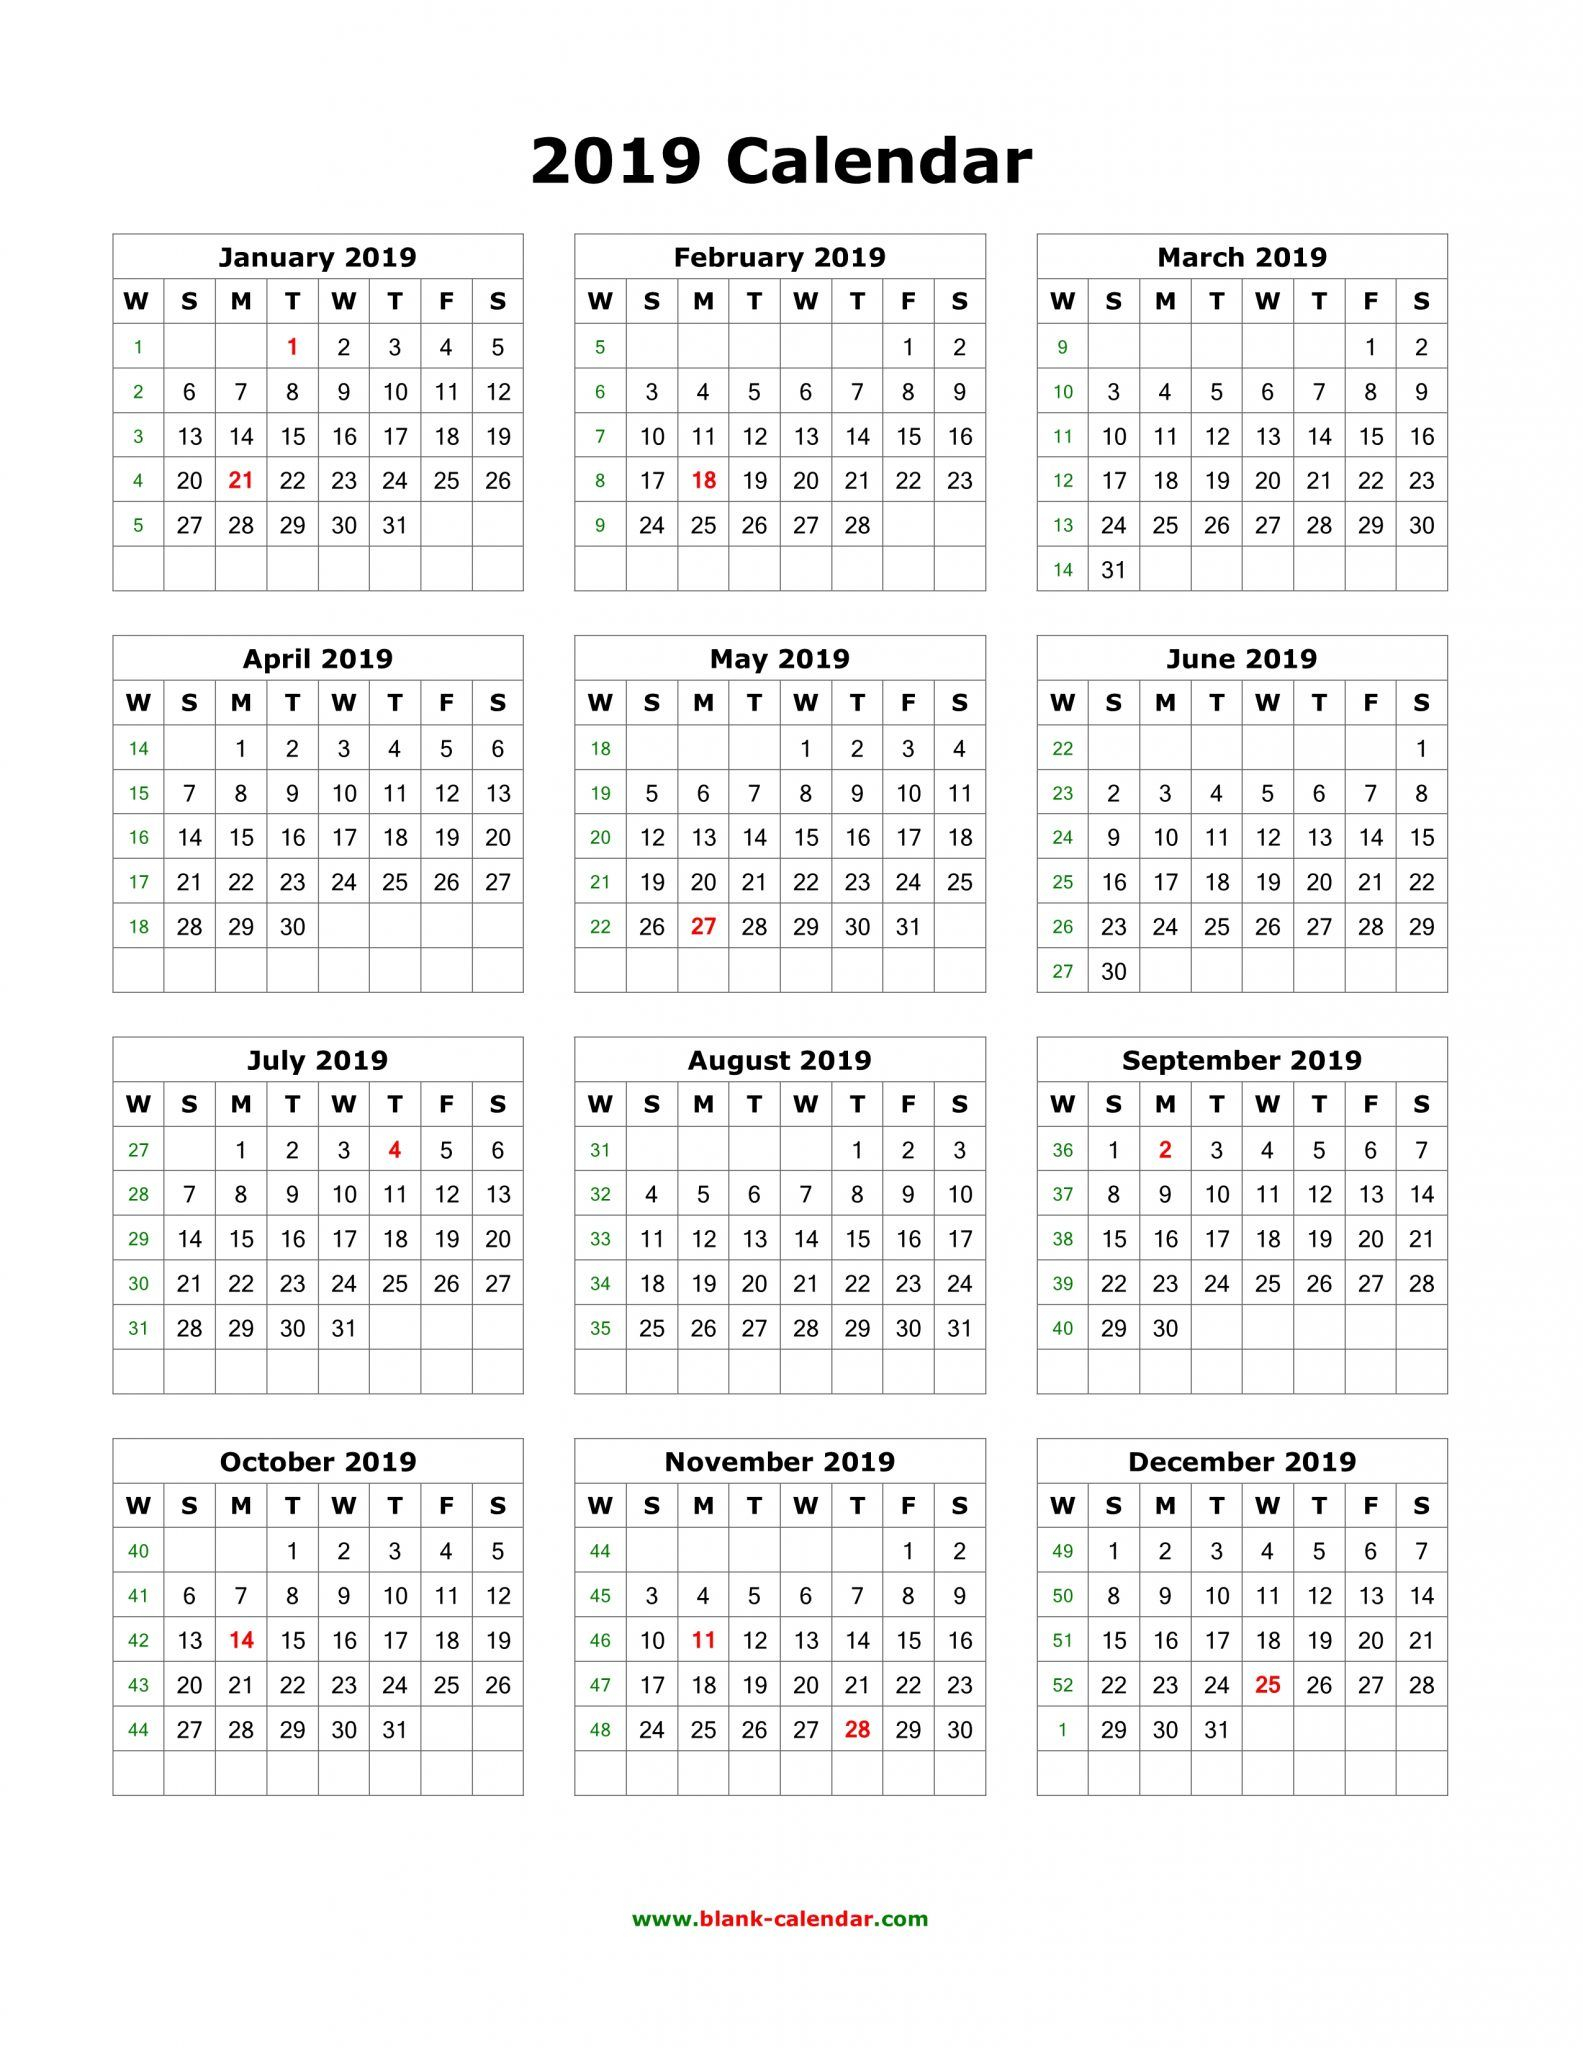 Download Blank 2019 Calendar Templates | 12 Month Calendar In One pertaining to Blank 12 Month Calendar Printable